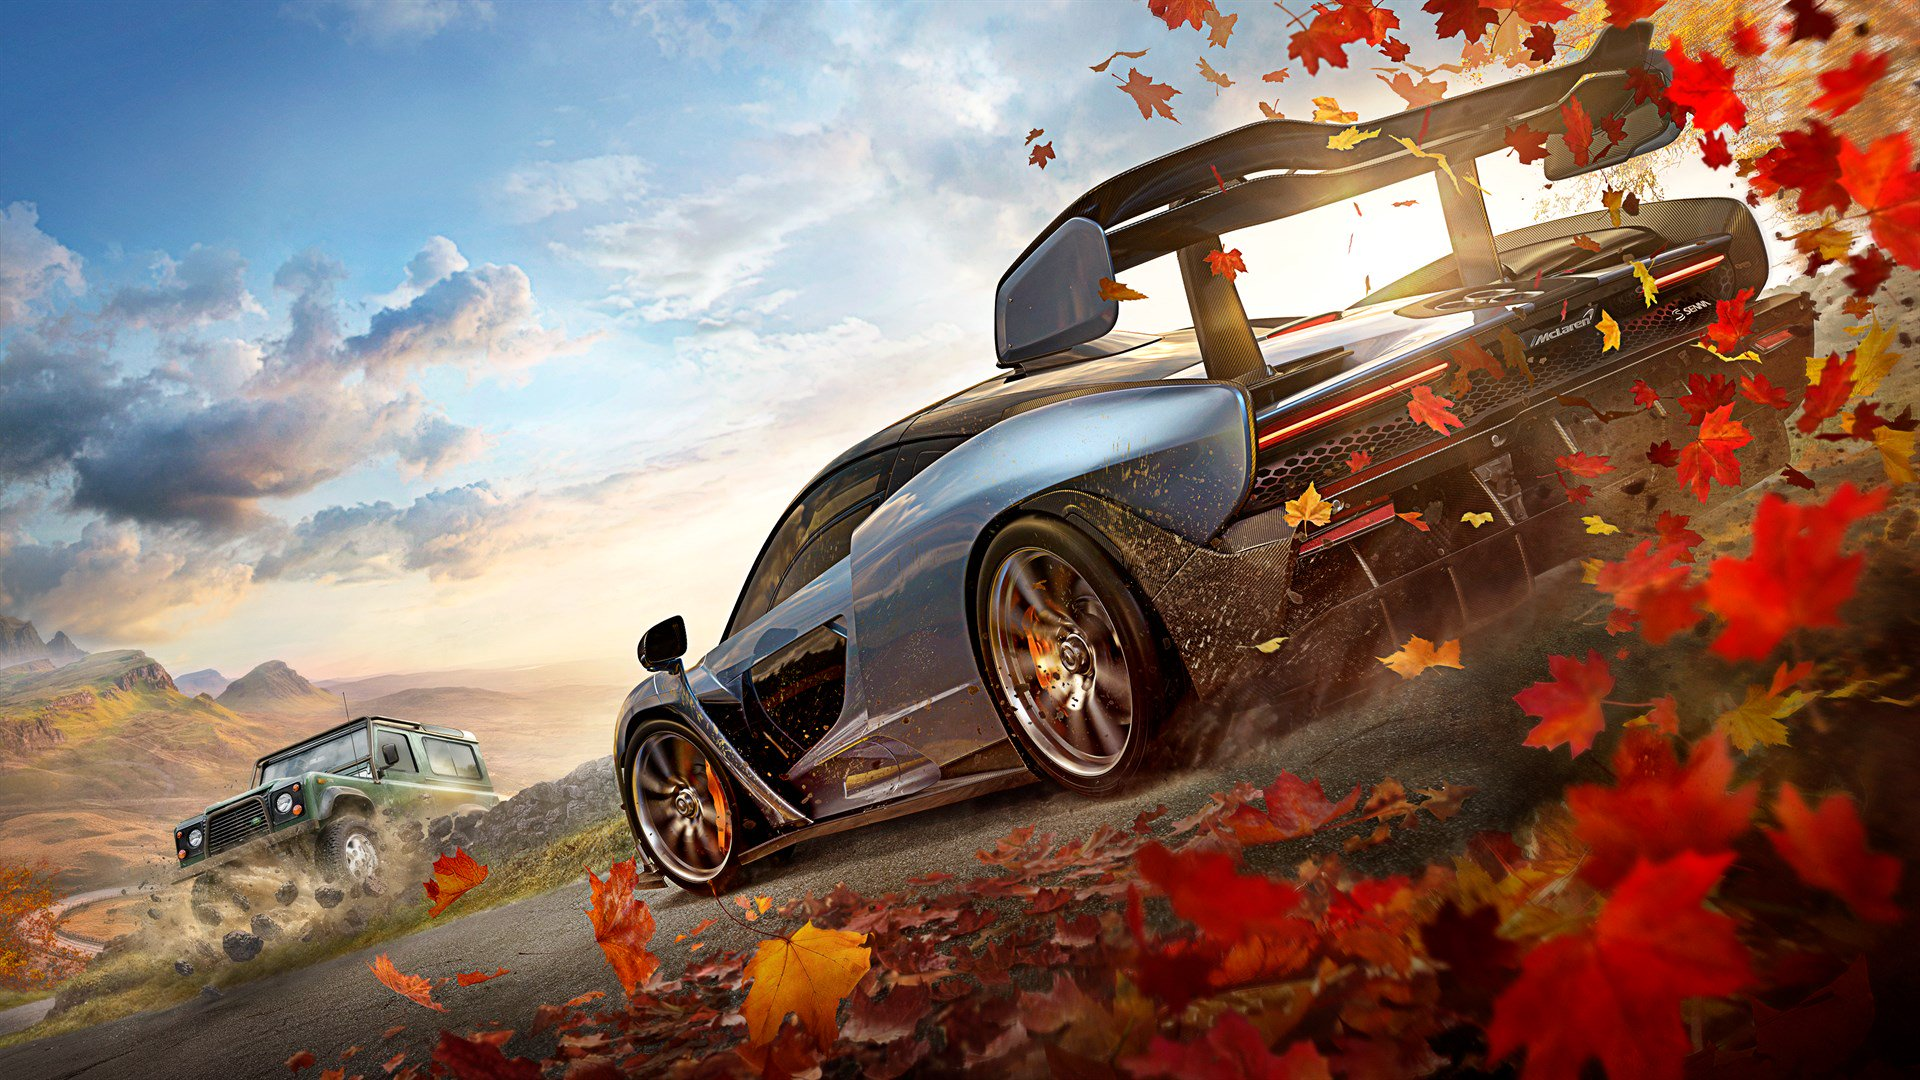 Forza Horizon 4 demo offers a free tour of the beautiful